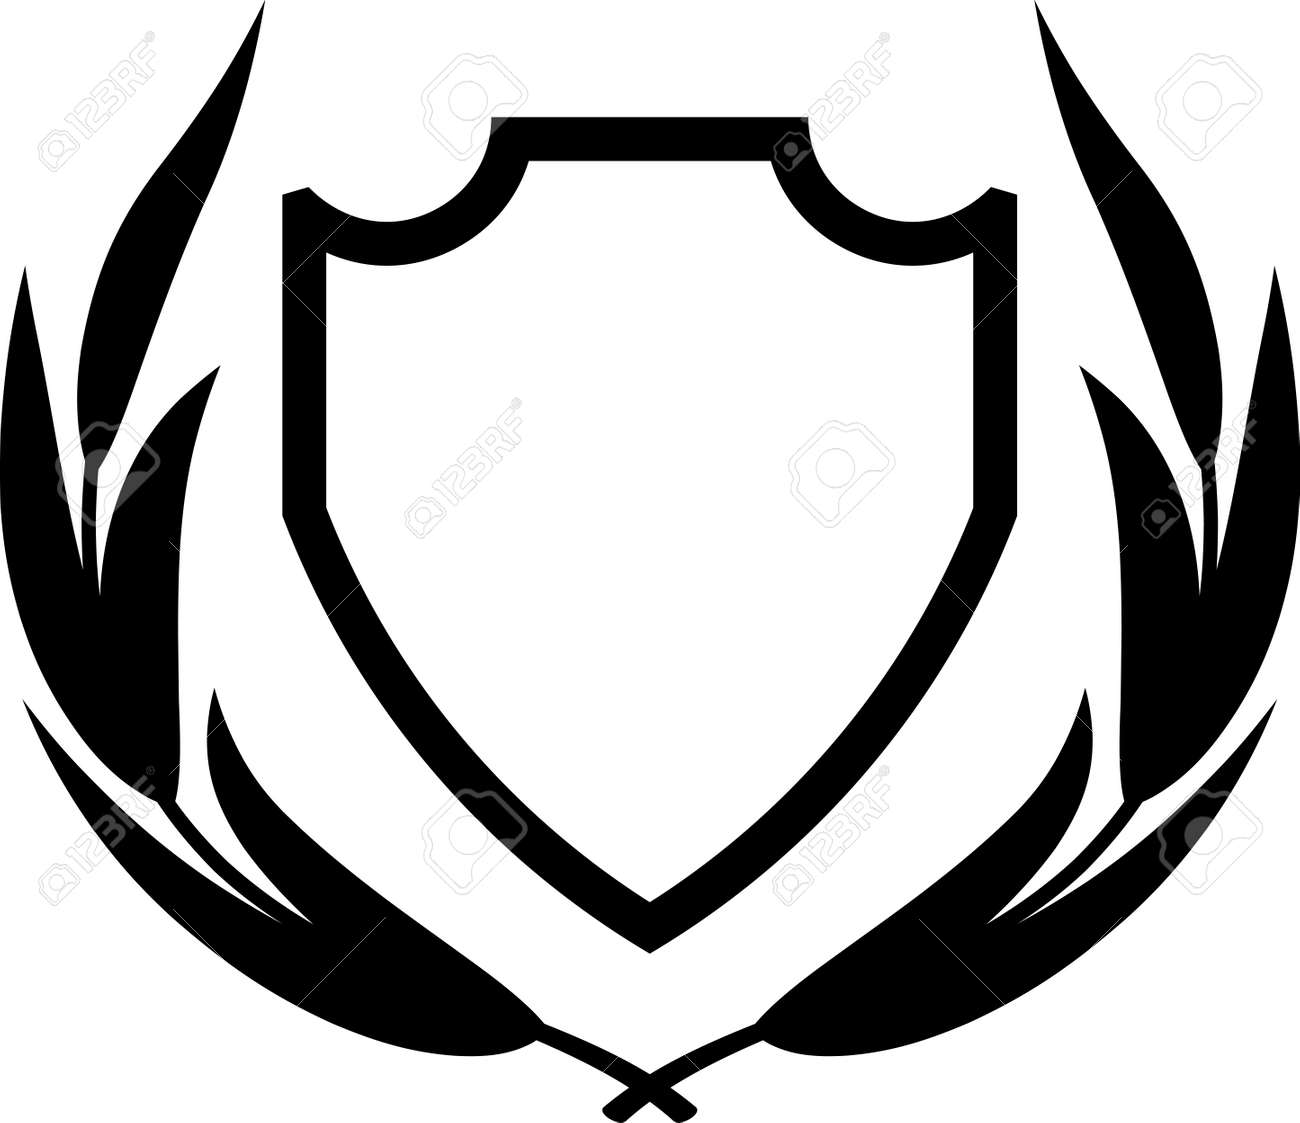 vector shield and laurel wreath isolated royalty free cliparts